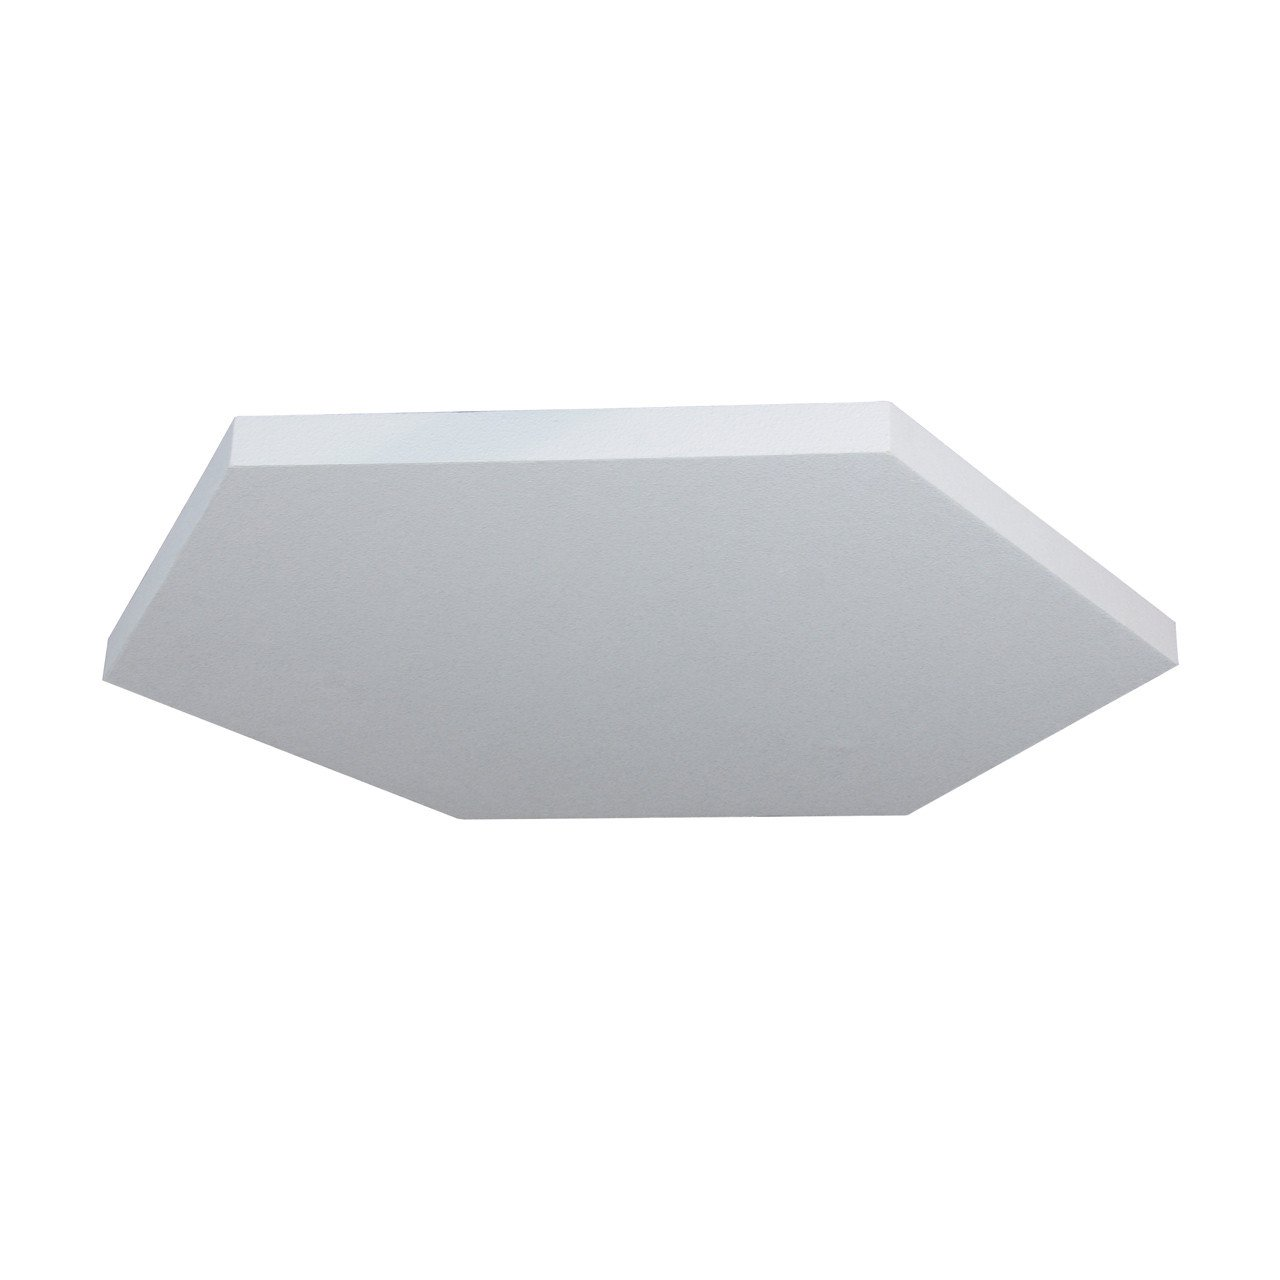 Ceiling Treatments - Primacoustic Hexus 36 Ceiling Acoustic Panel (914 X 914 X 38mm)